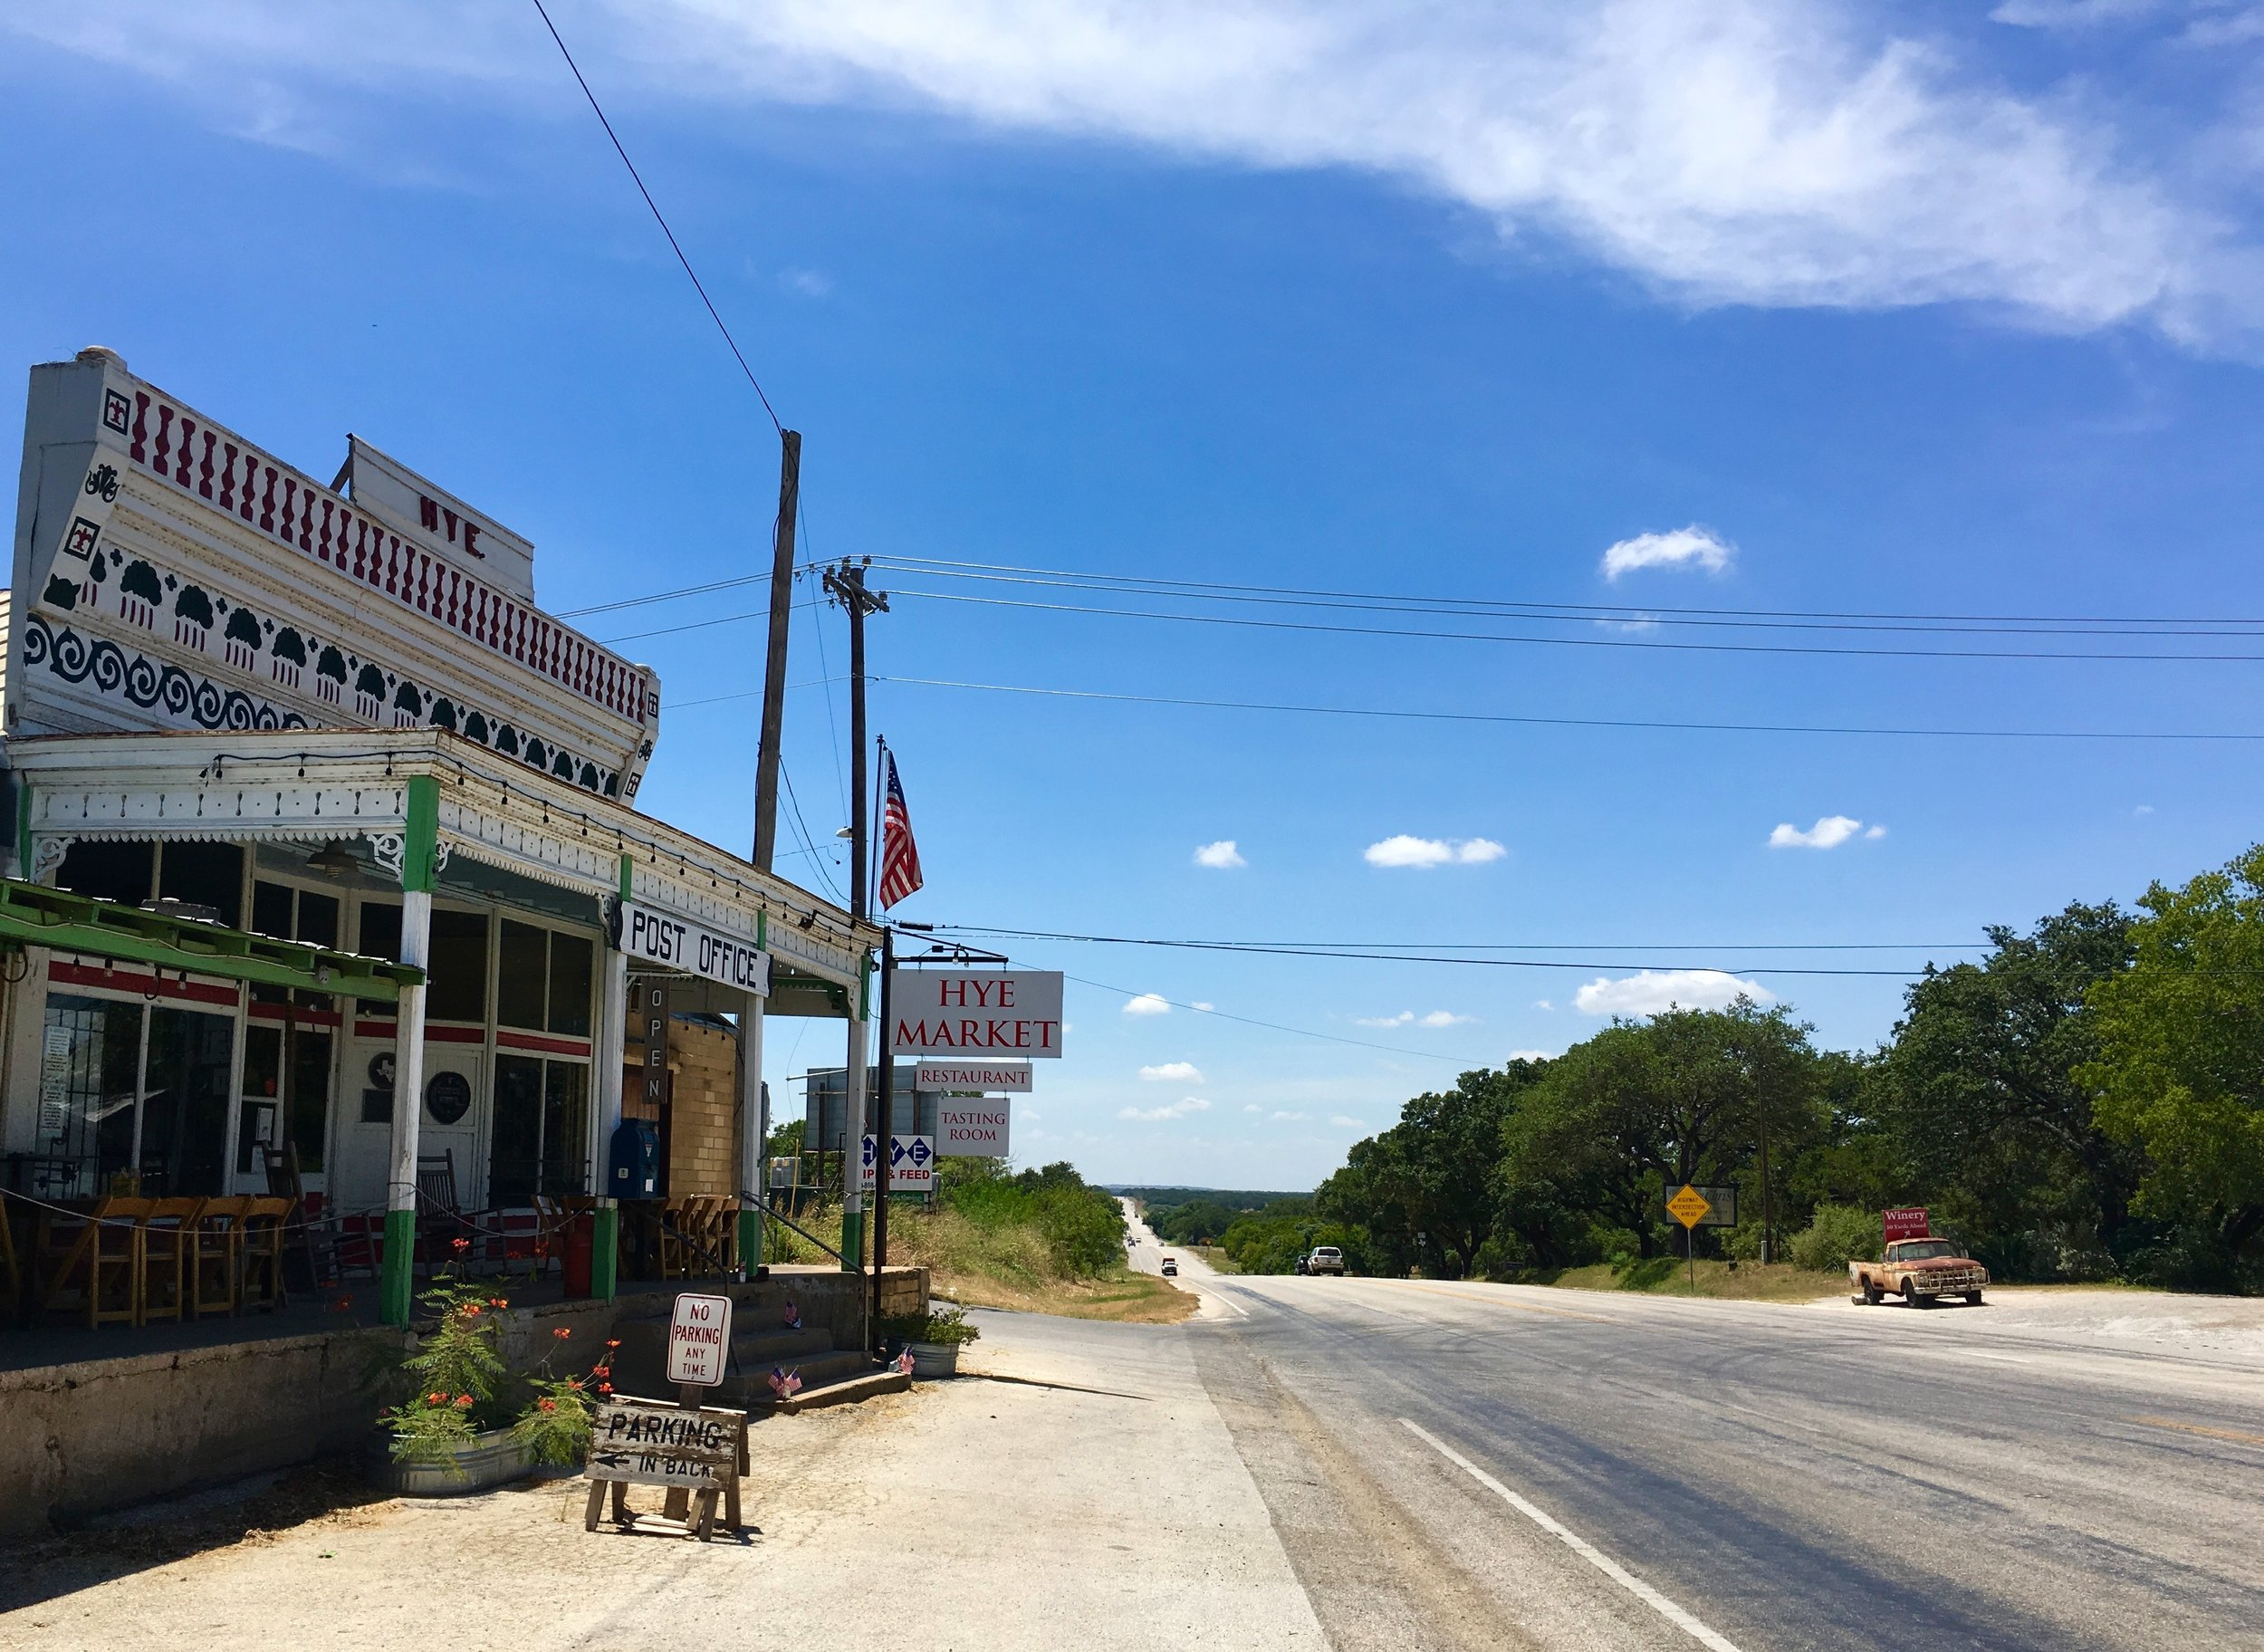 Hye Market in Texas Hill Country